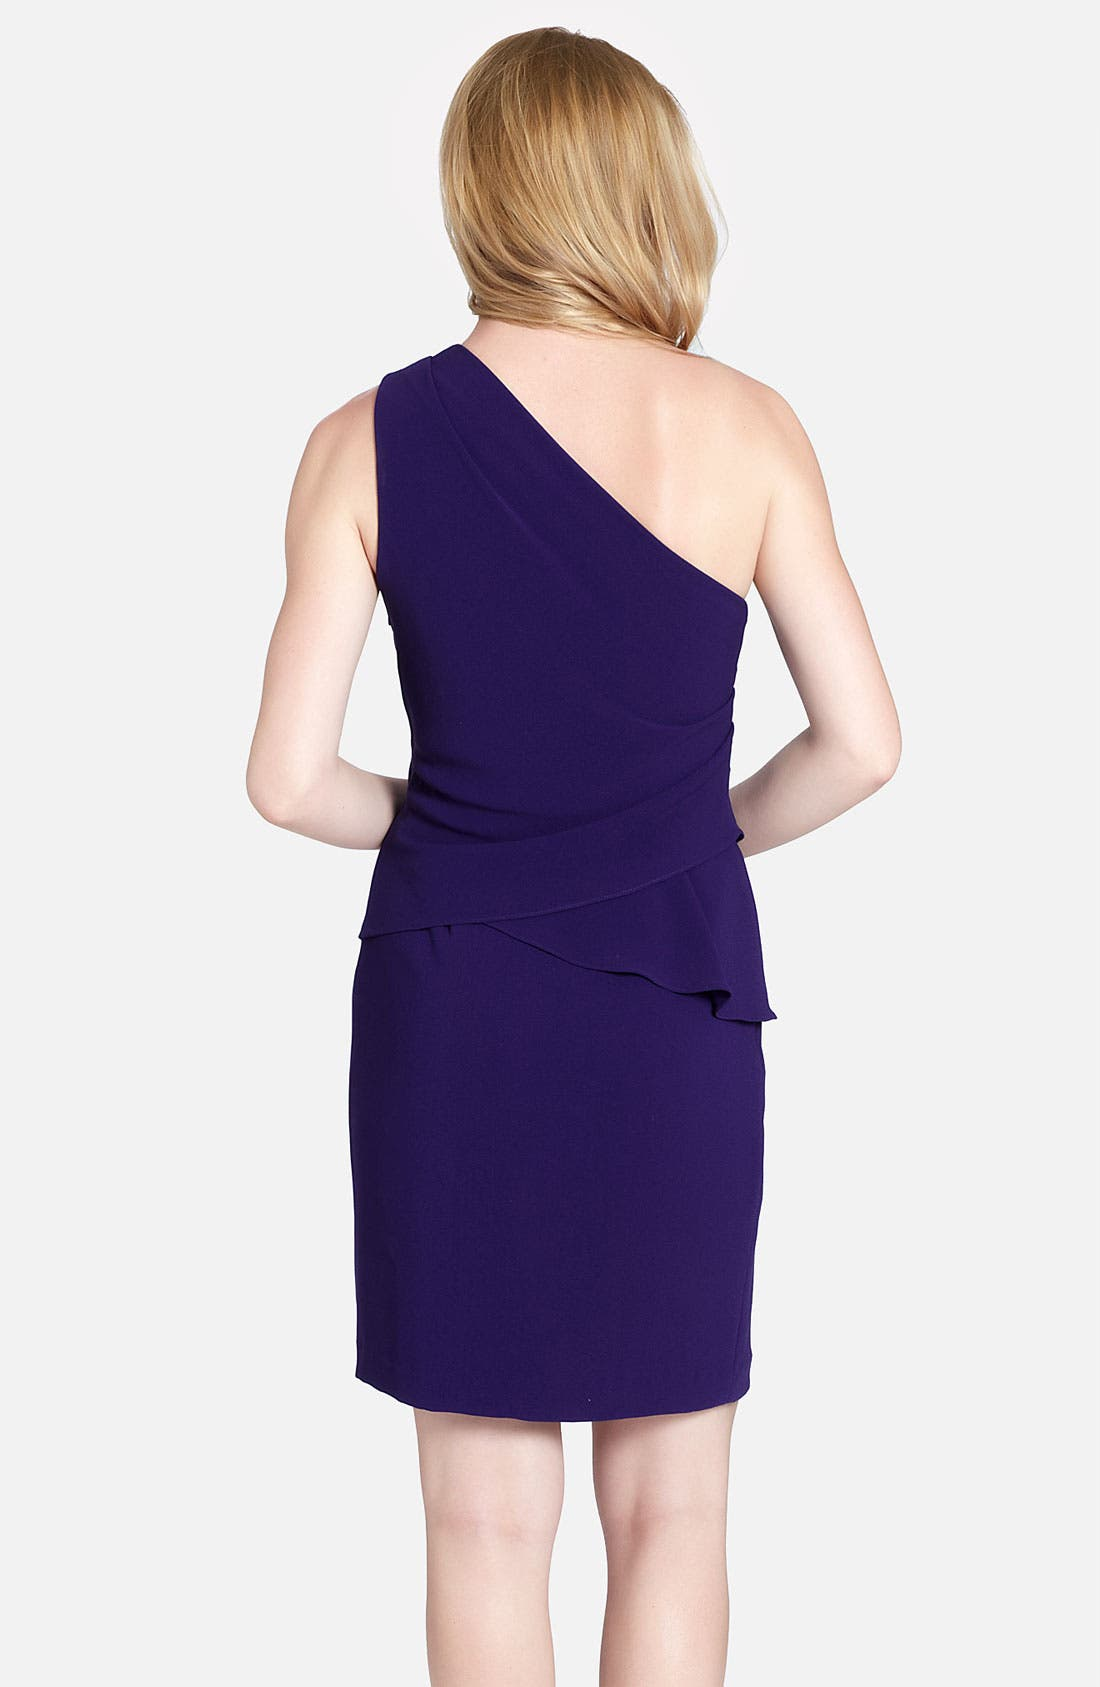 Alternate Image 2  - Cynthia Steffe 'Brielle' One Shoulder Side Peplum Dress